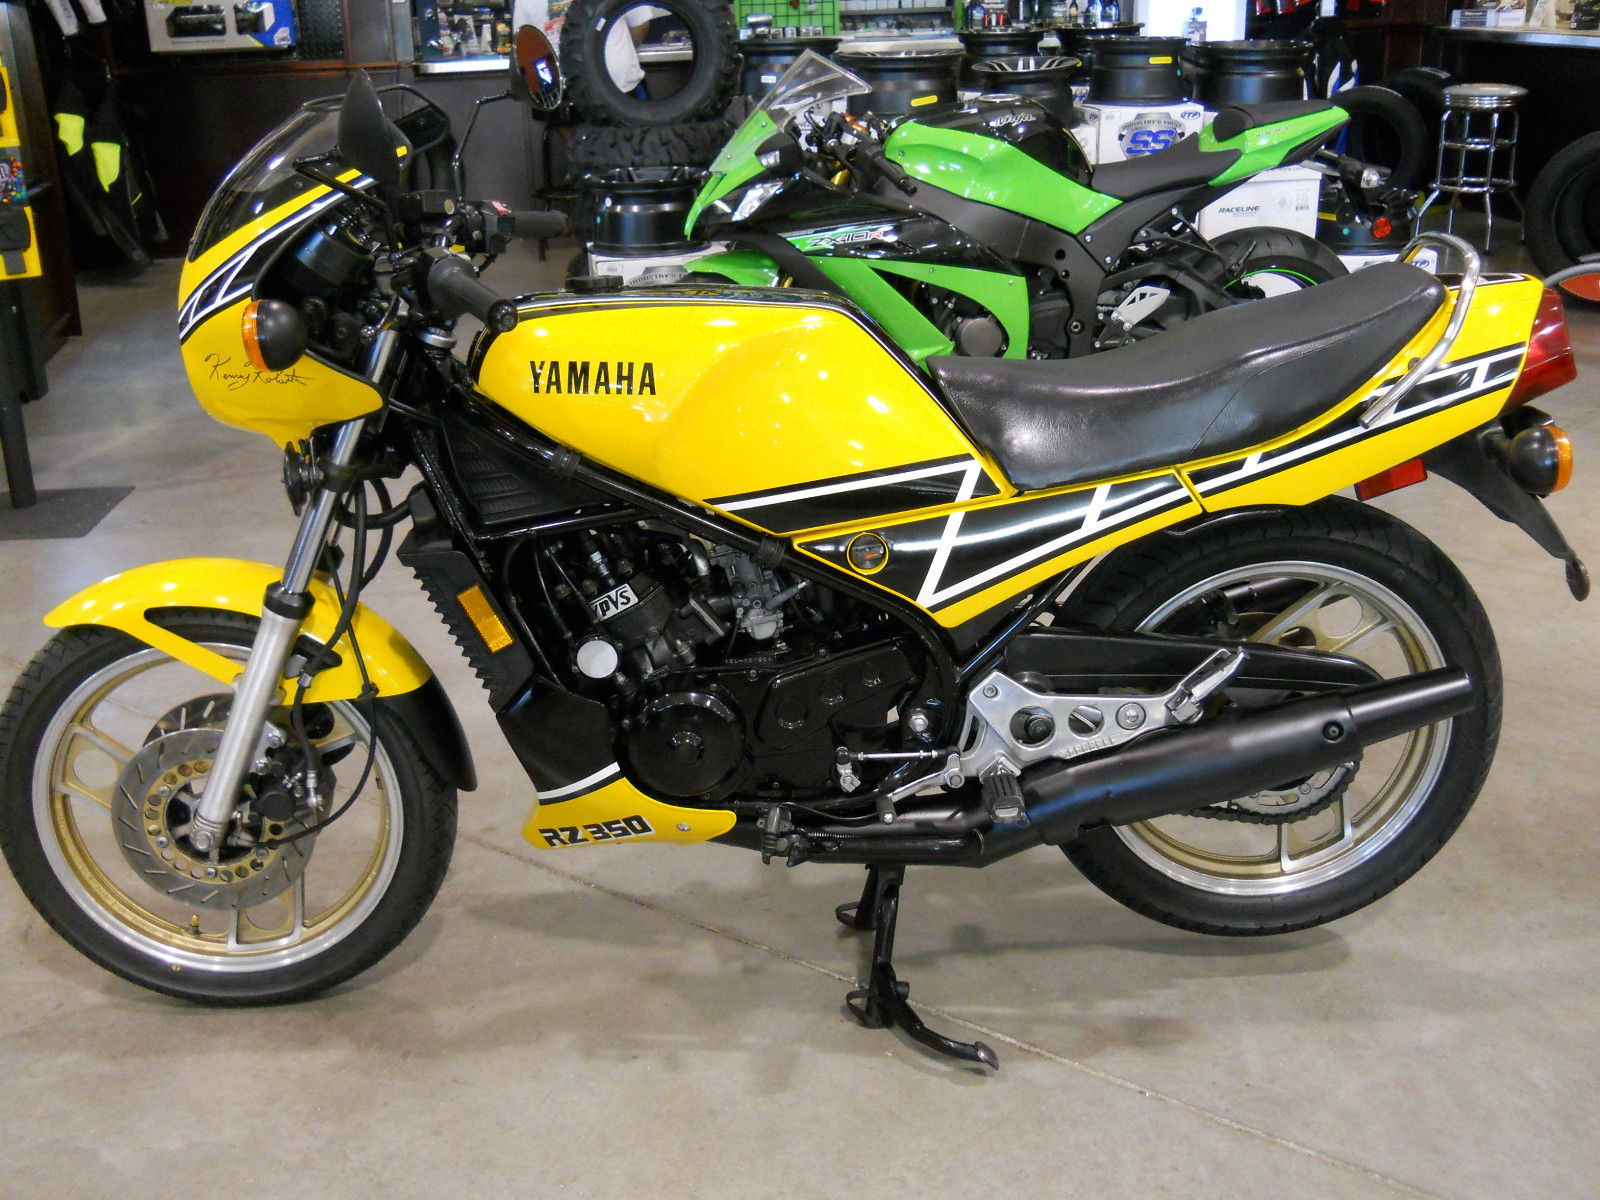 Super clean 1985 yamaha rz350 in florida rare sportbikes for Yamaha rz for sale